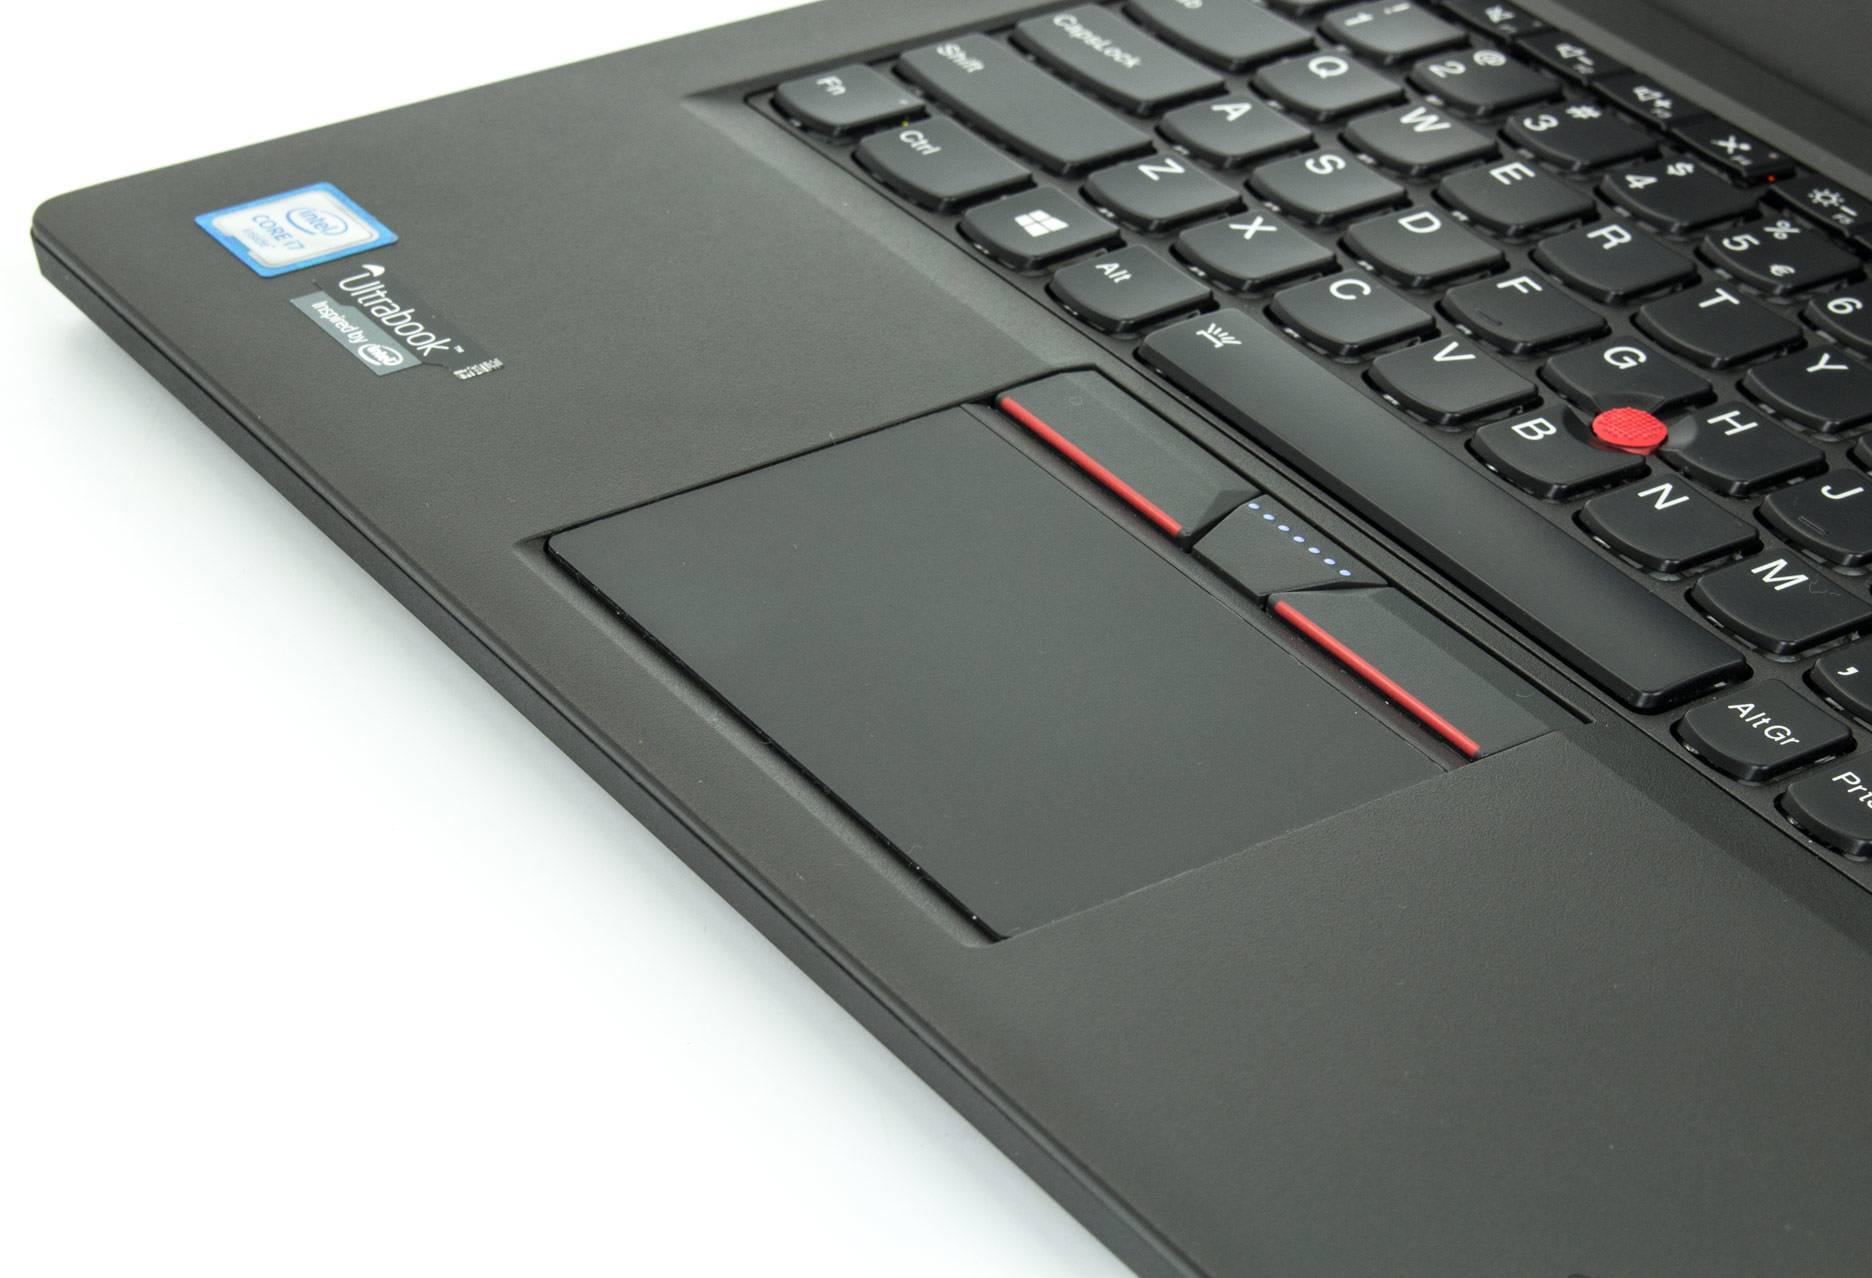 Lenovo ThinkPad X260 touchpad